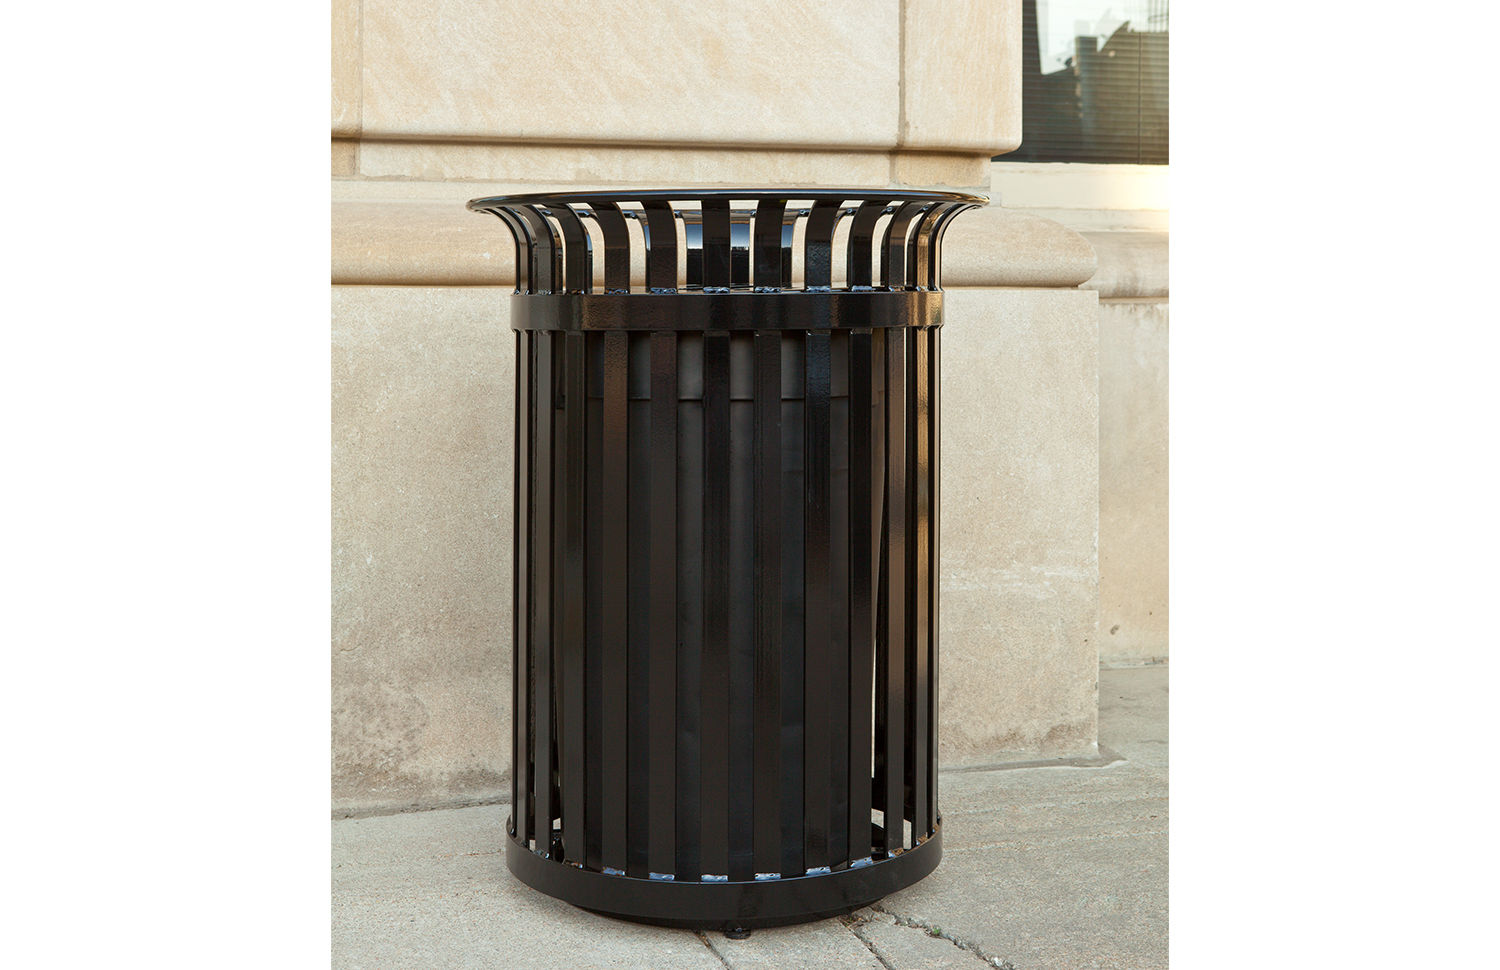 Avenue One litter receptacle